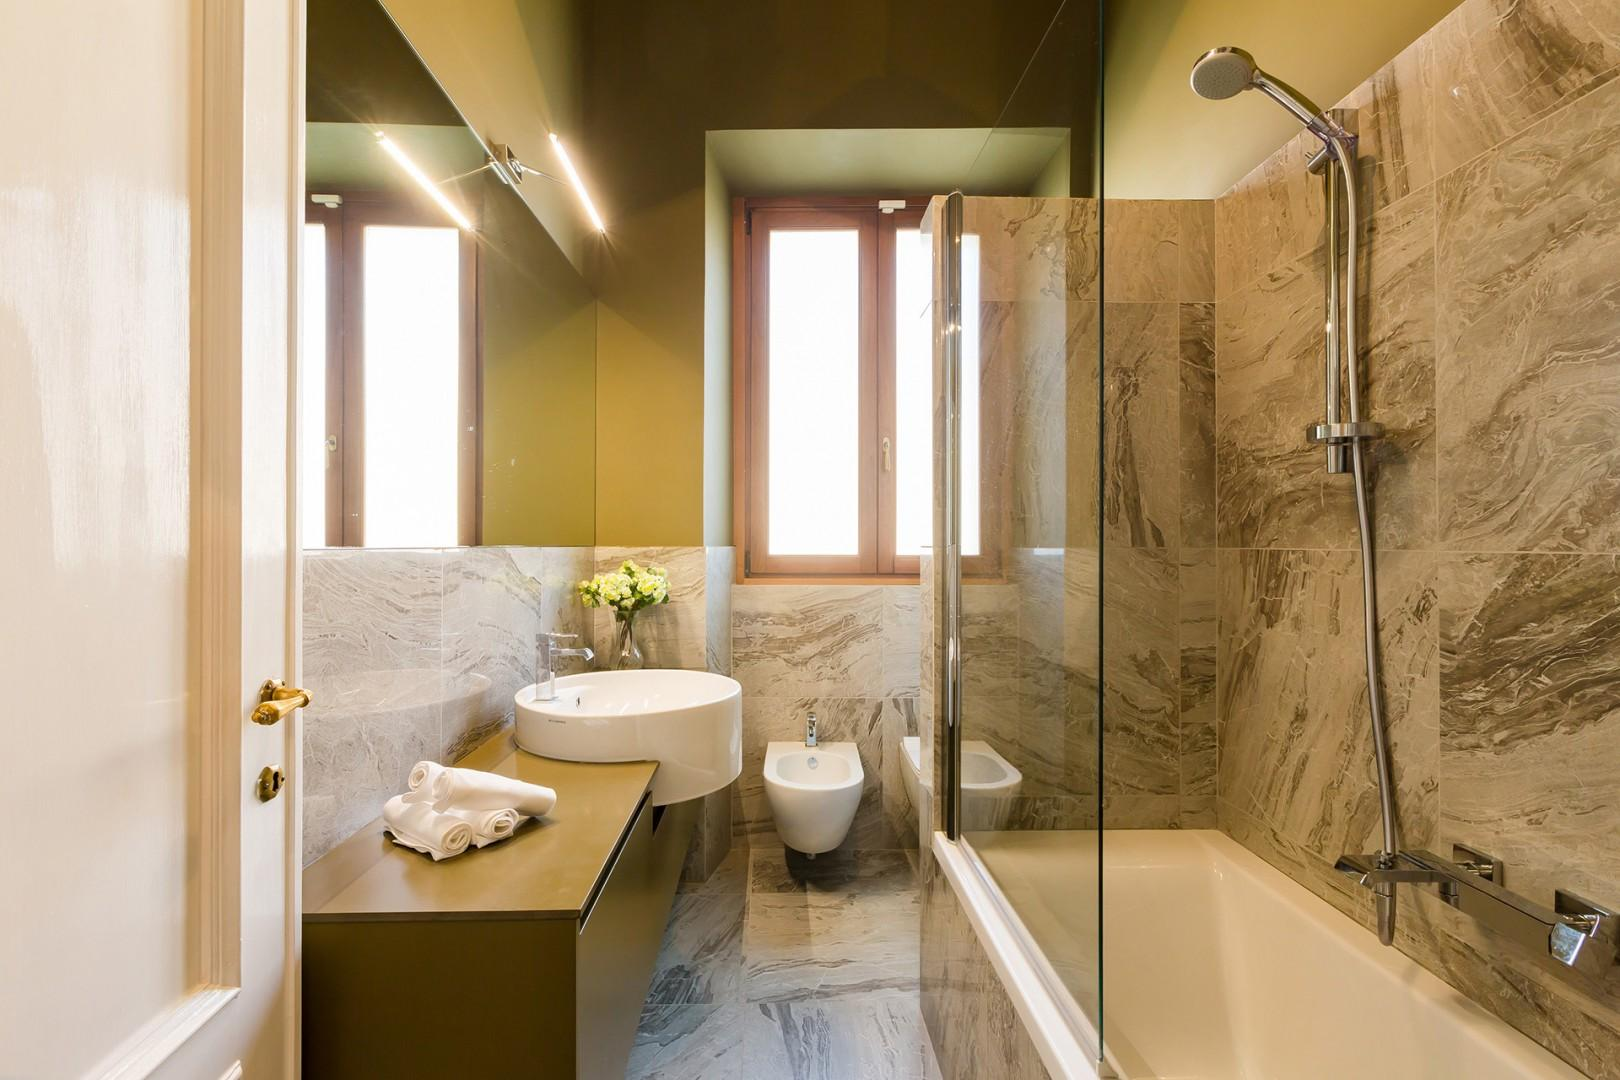 Luxurious bathroom 1 gets lots of light. Sink has excellent counter top space.